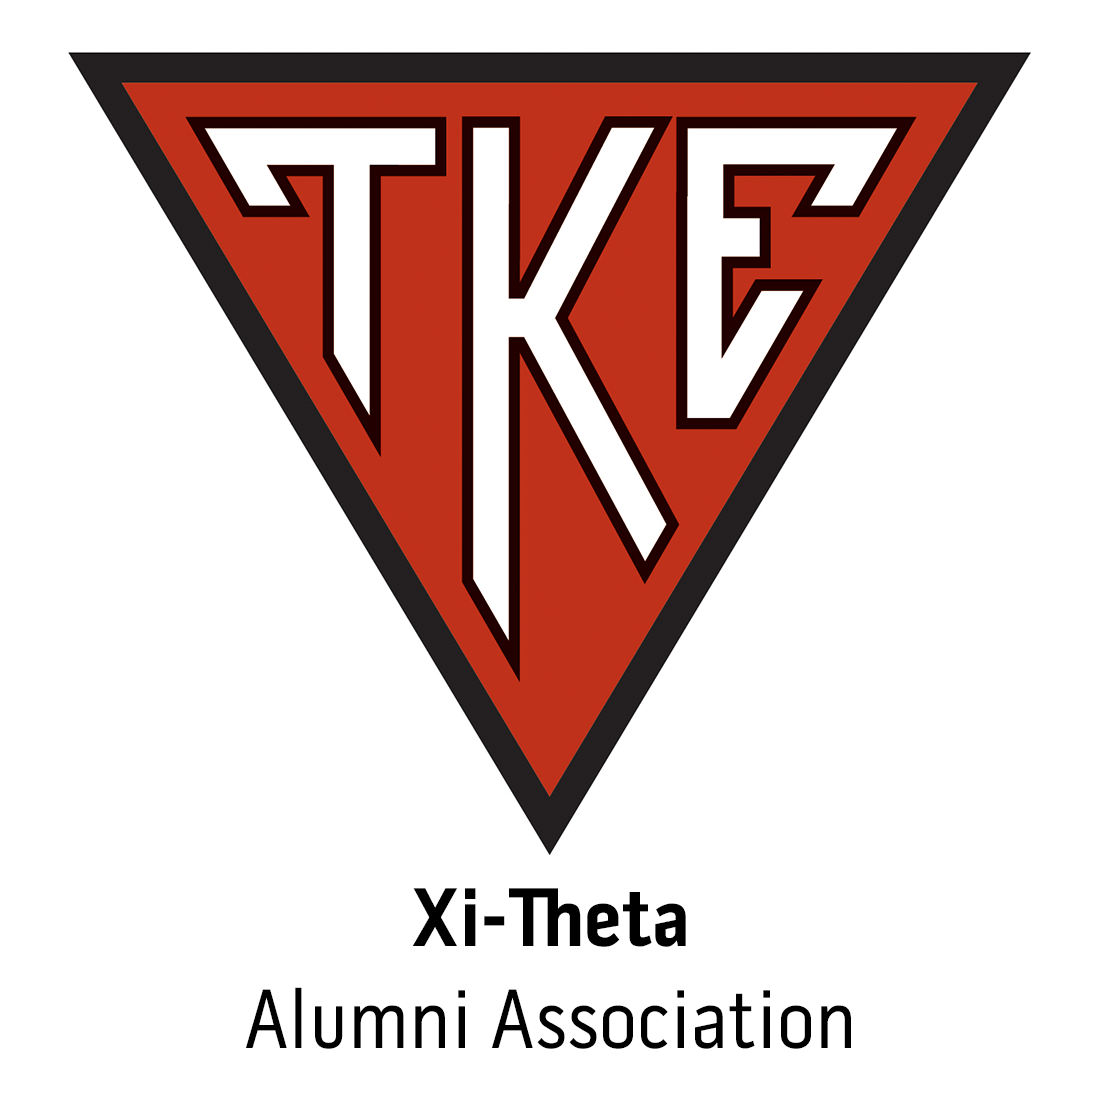 Xi-Theta Alumni Association at University of West Georgia